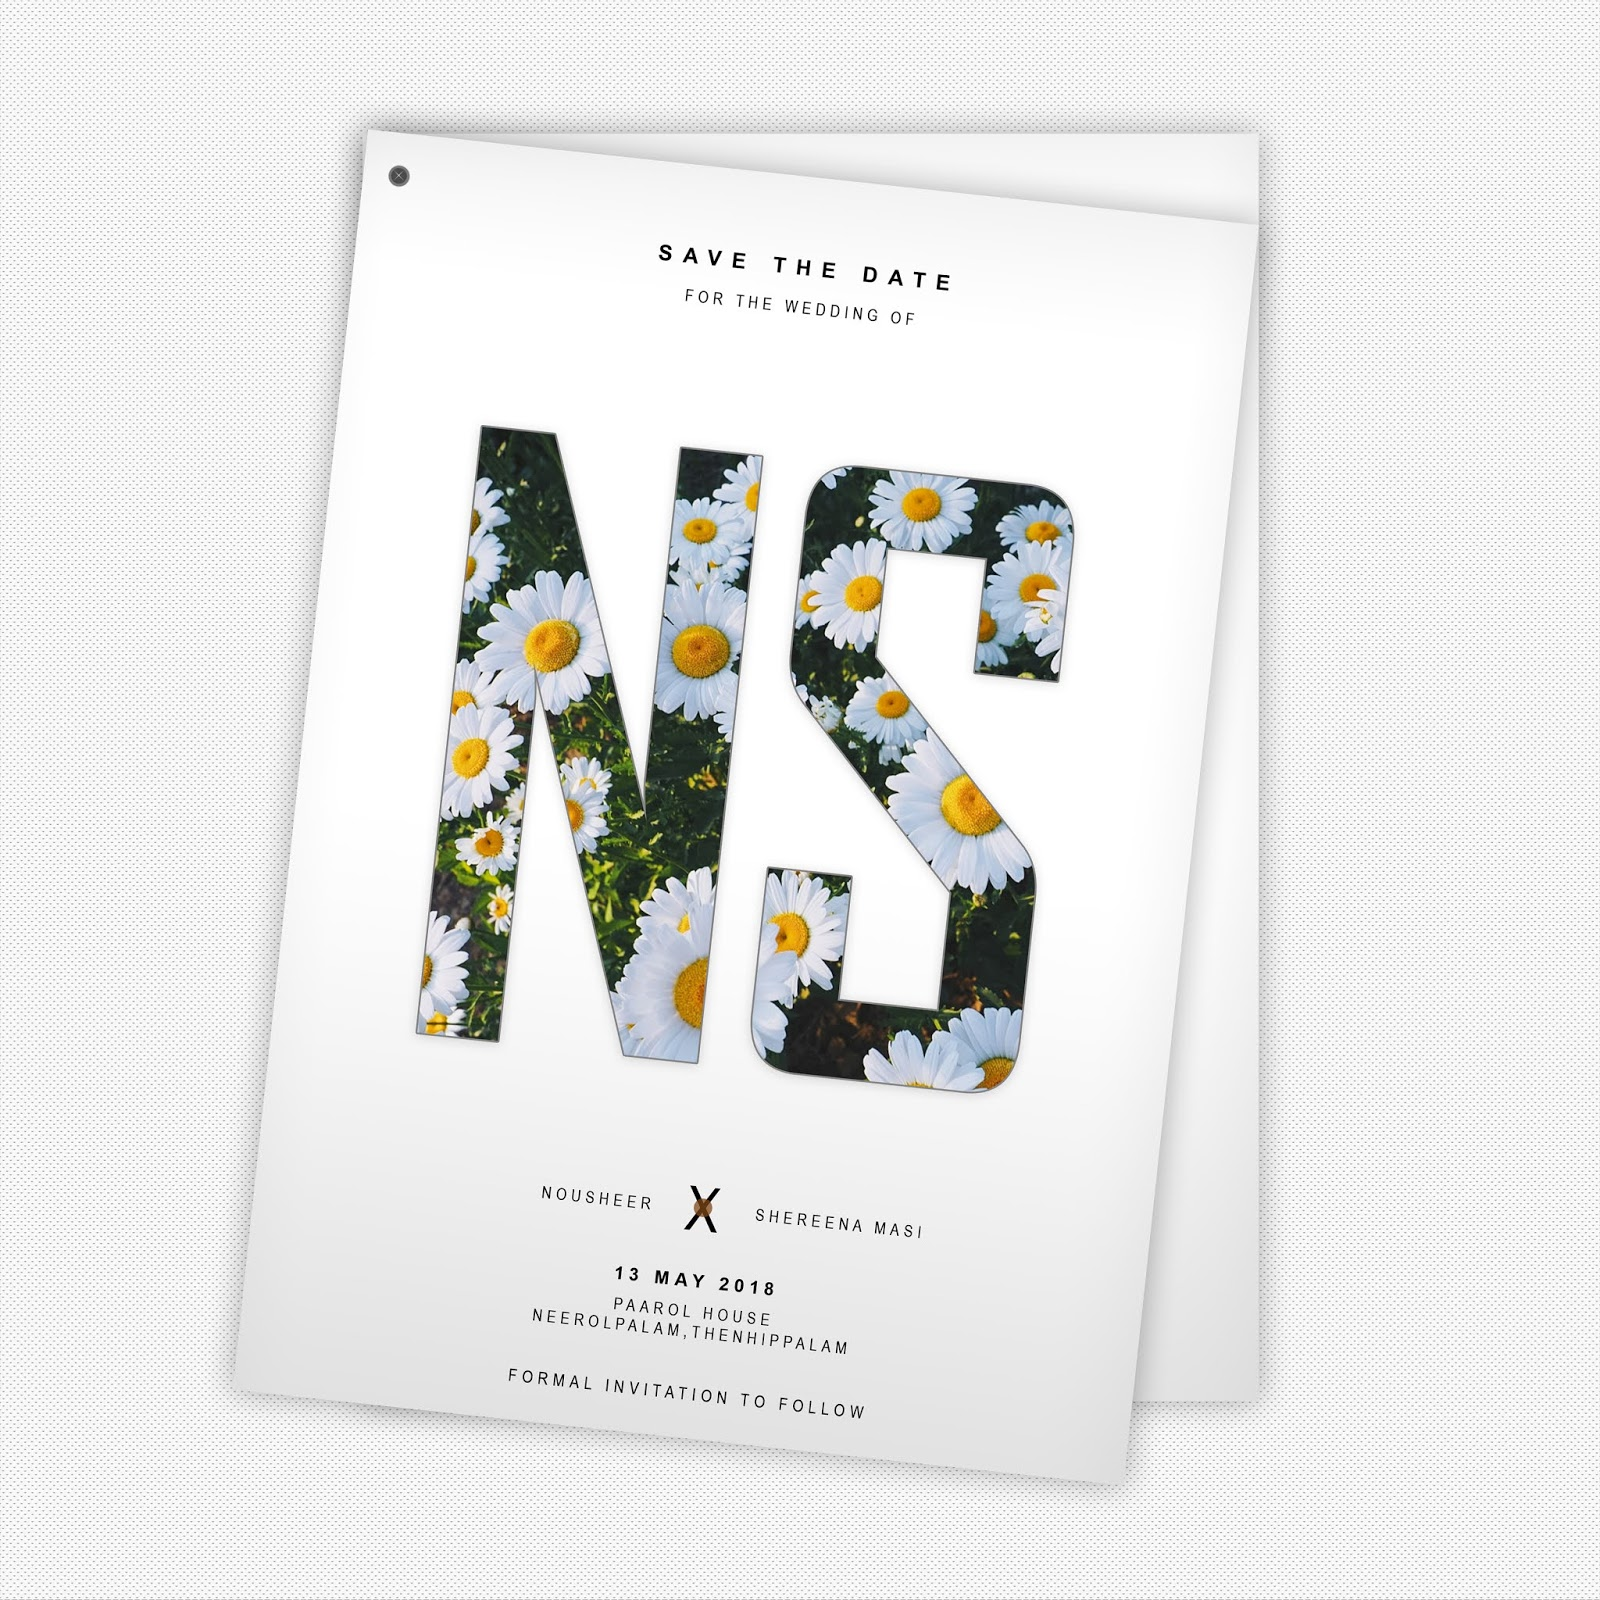 Awesome Save the date wedding cards designing ideas